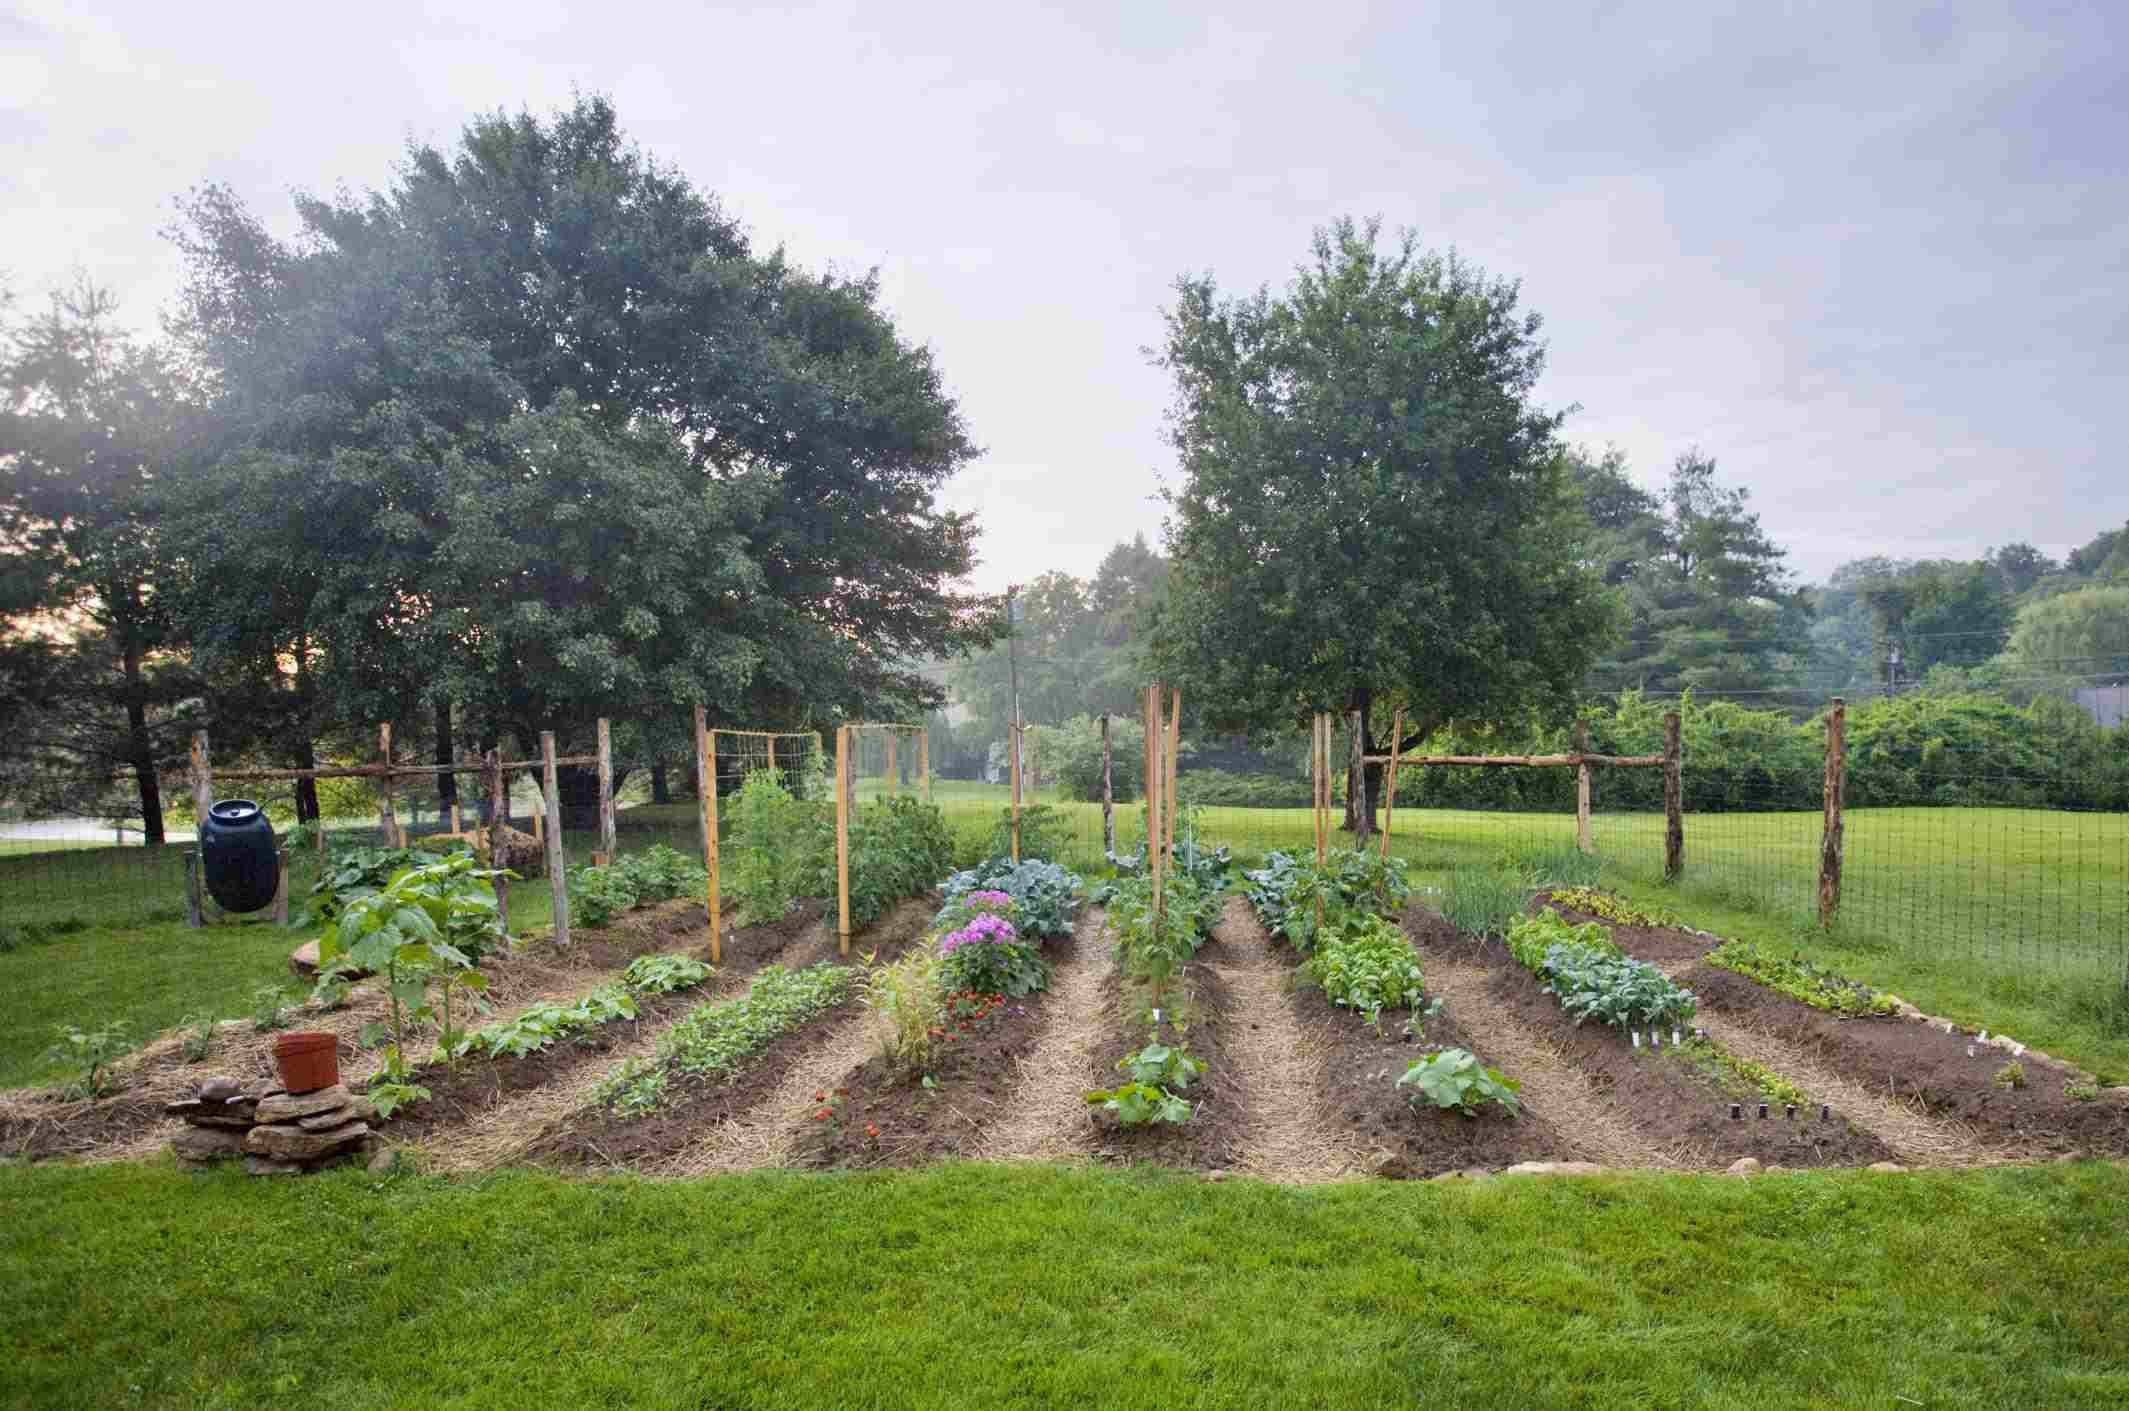 Vegetable garden with seedlings